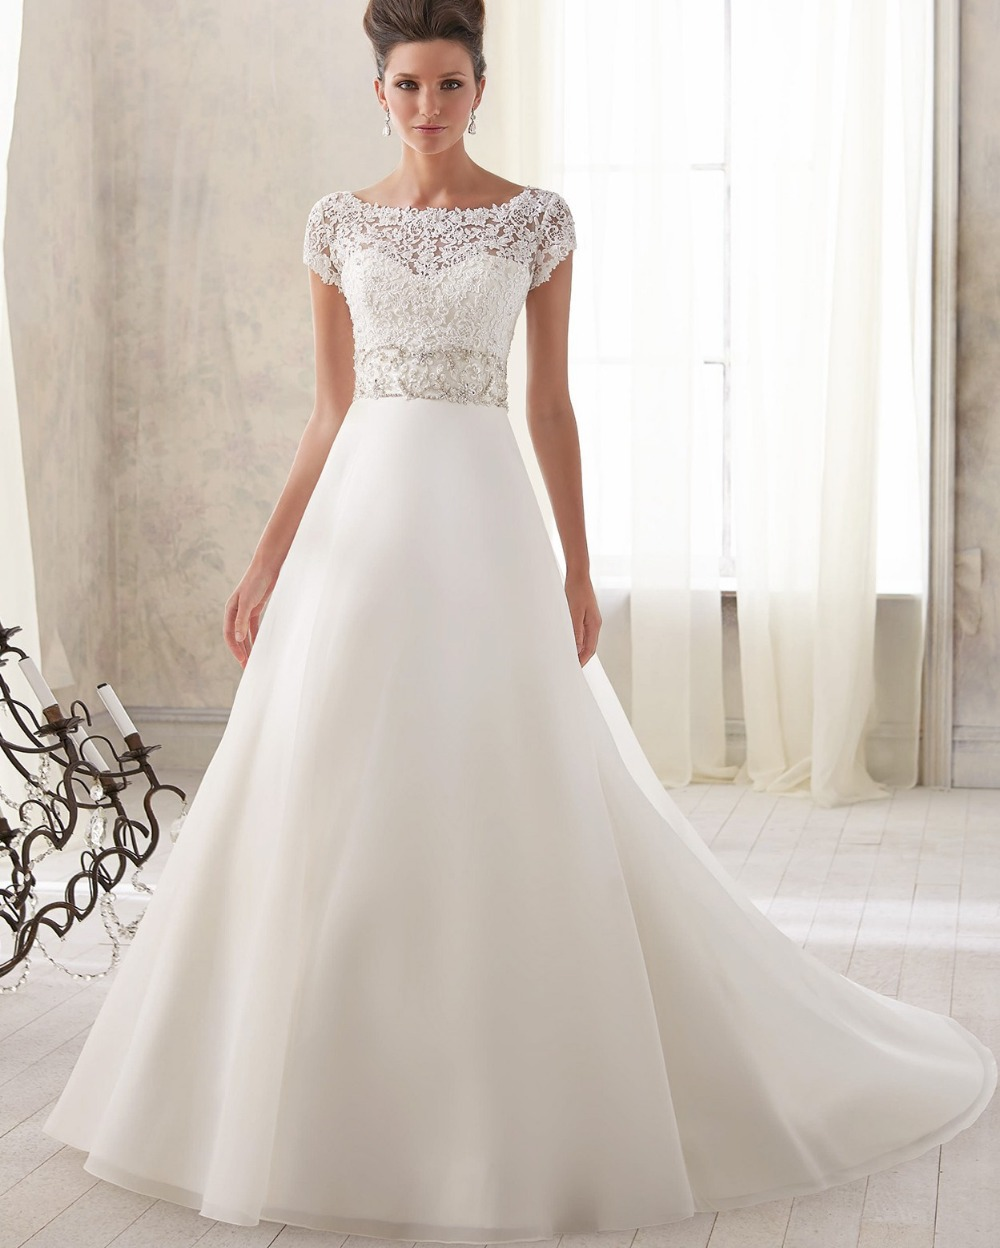 Sexy Short Sleeve Lace Wedding Dress 2016 New Arrival